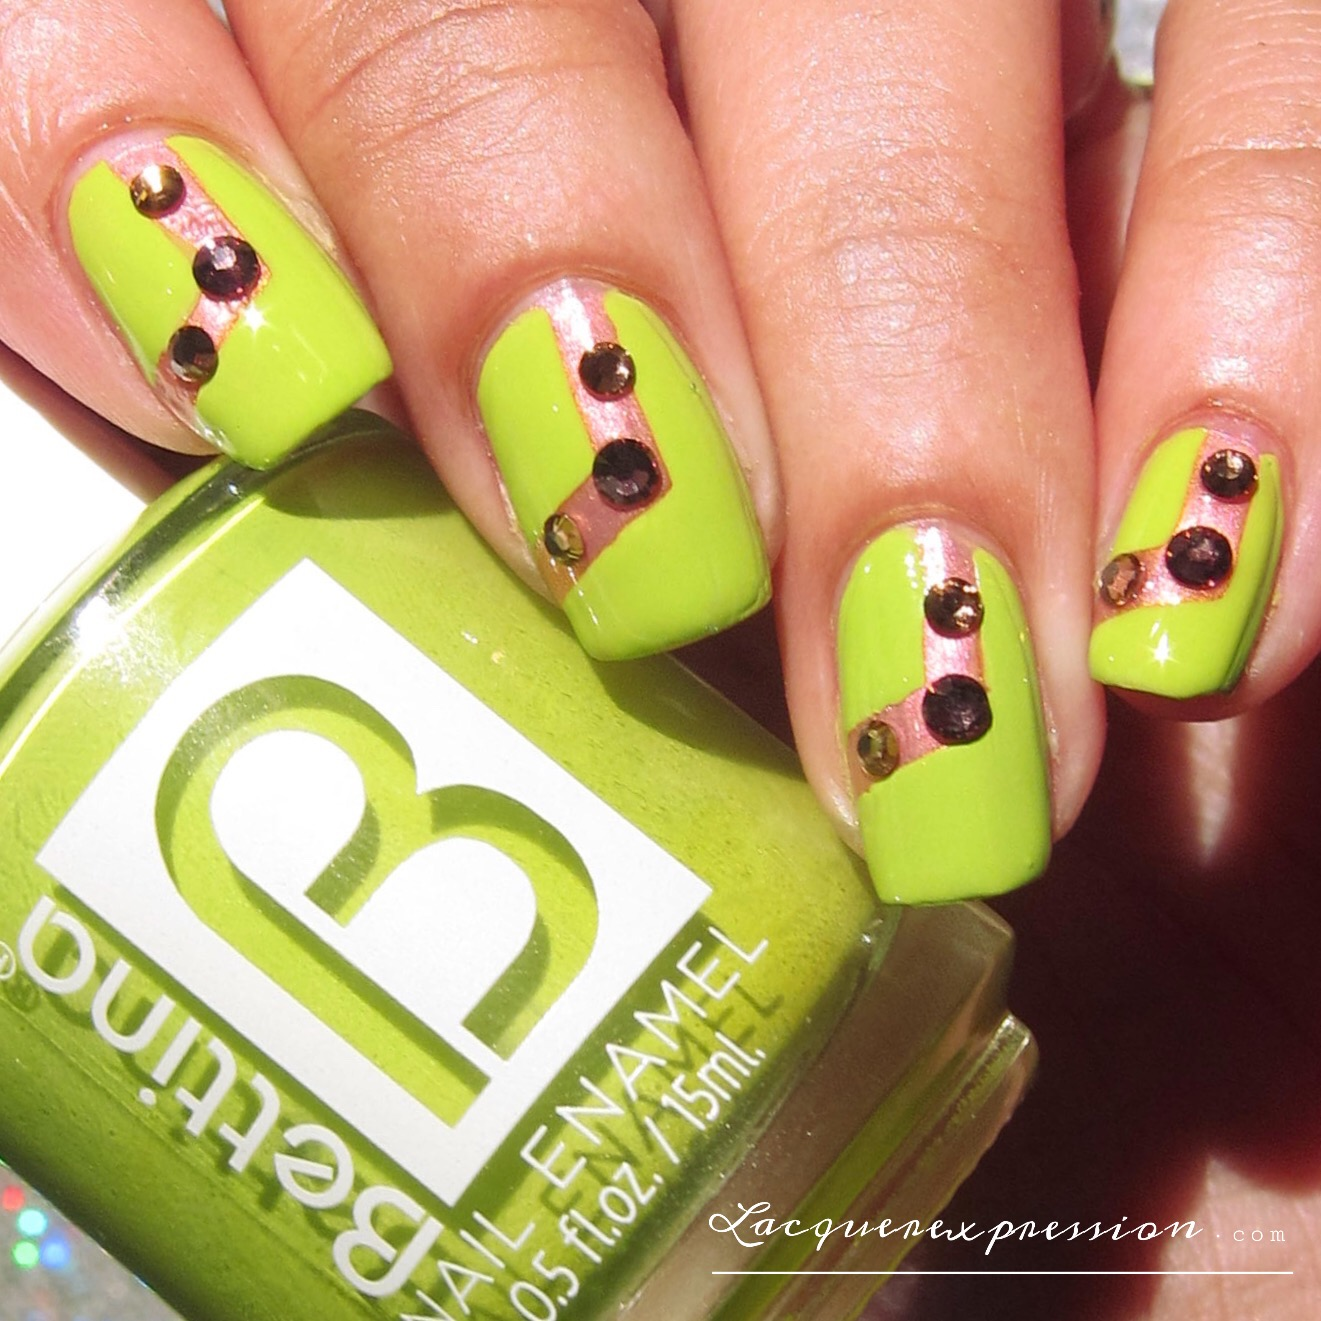 Mainstream swatch and review swarovski trends nail art crystals original nail art design featuring round amethyst and peridot swarovski nail crystals green apple by prinsesfo Images